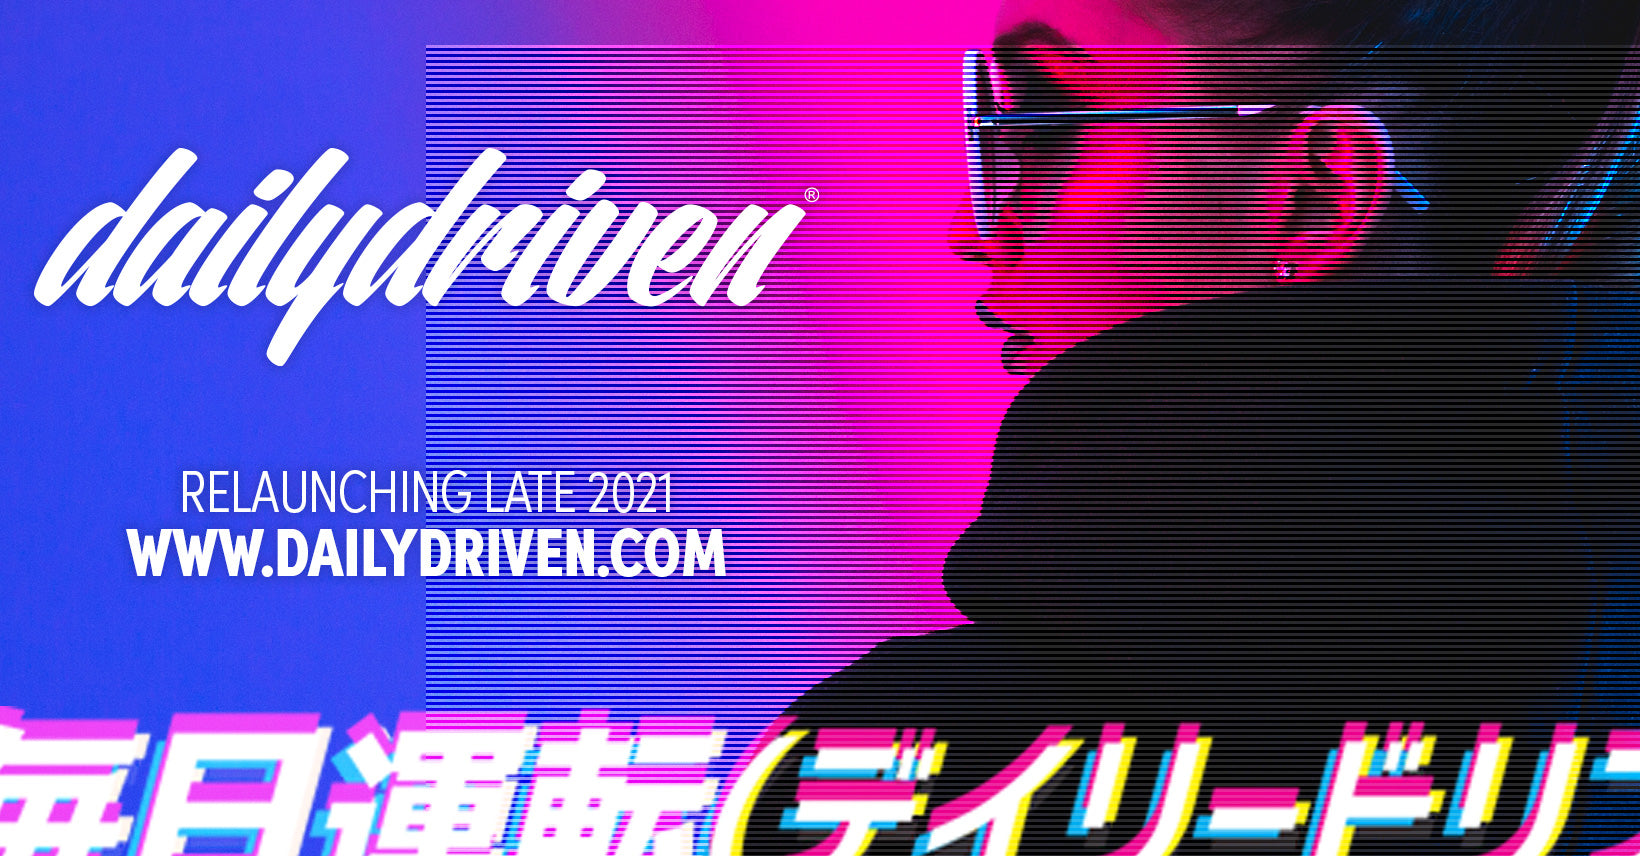 DailyDriven Relaunching Late 2021